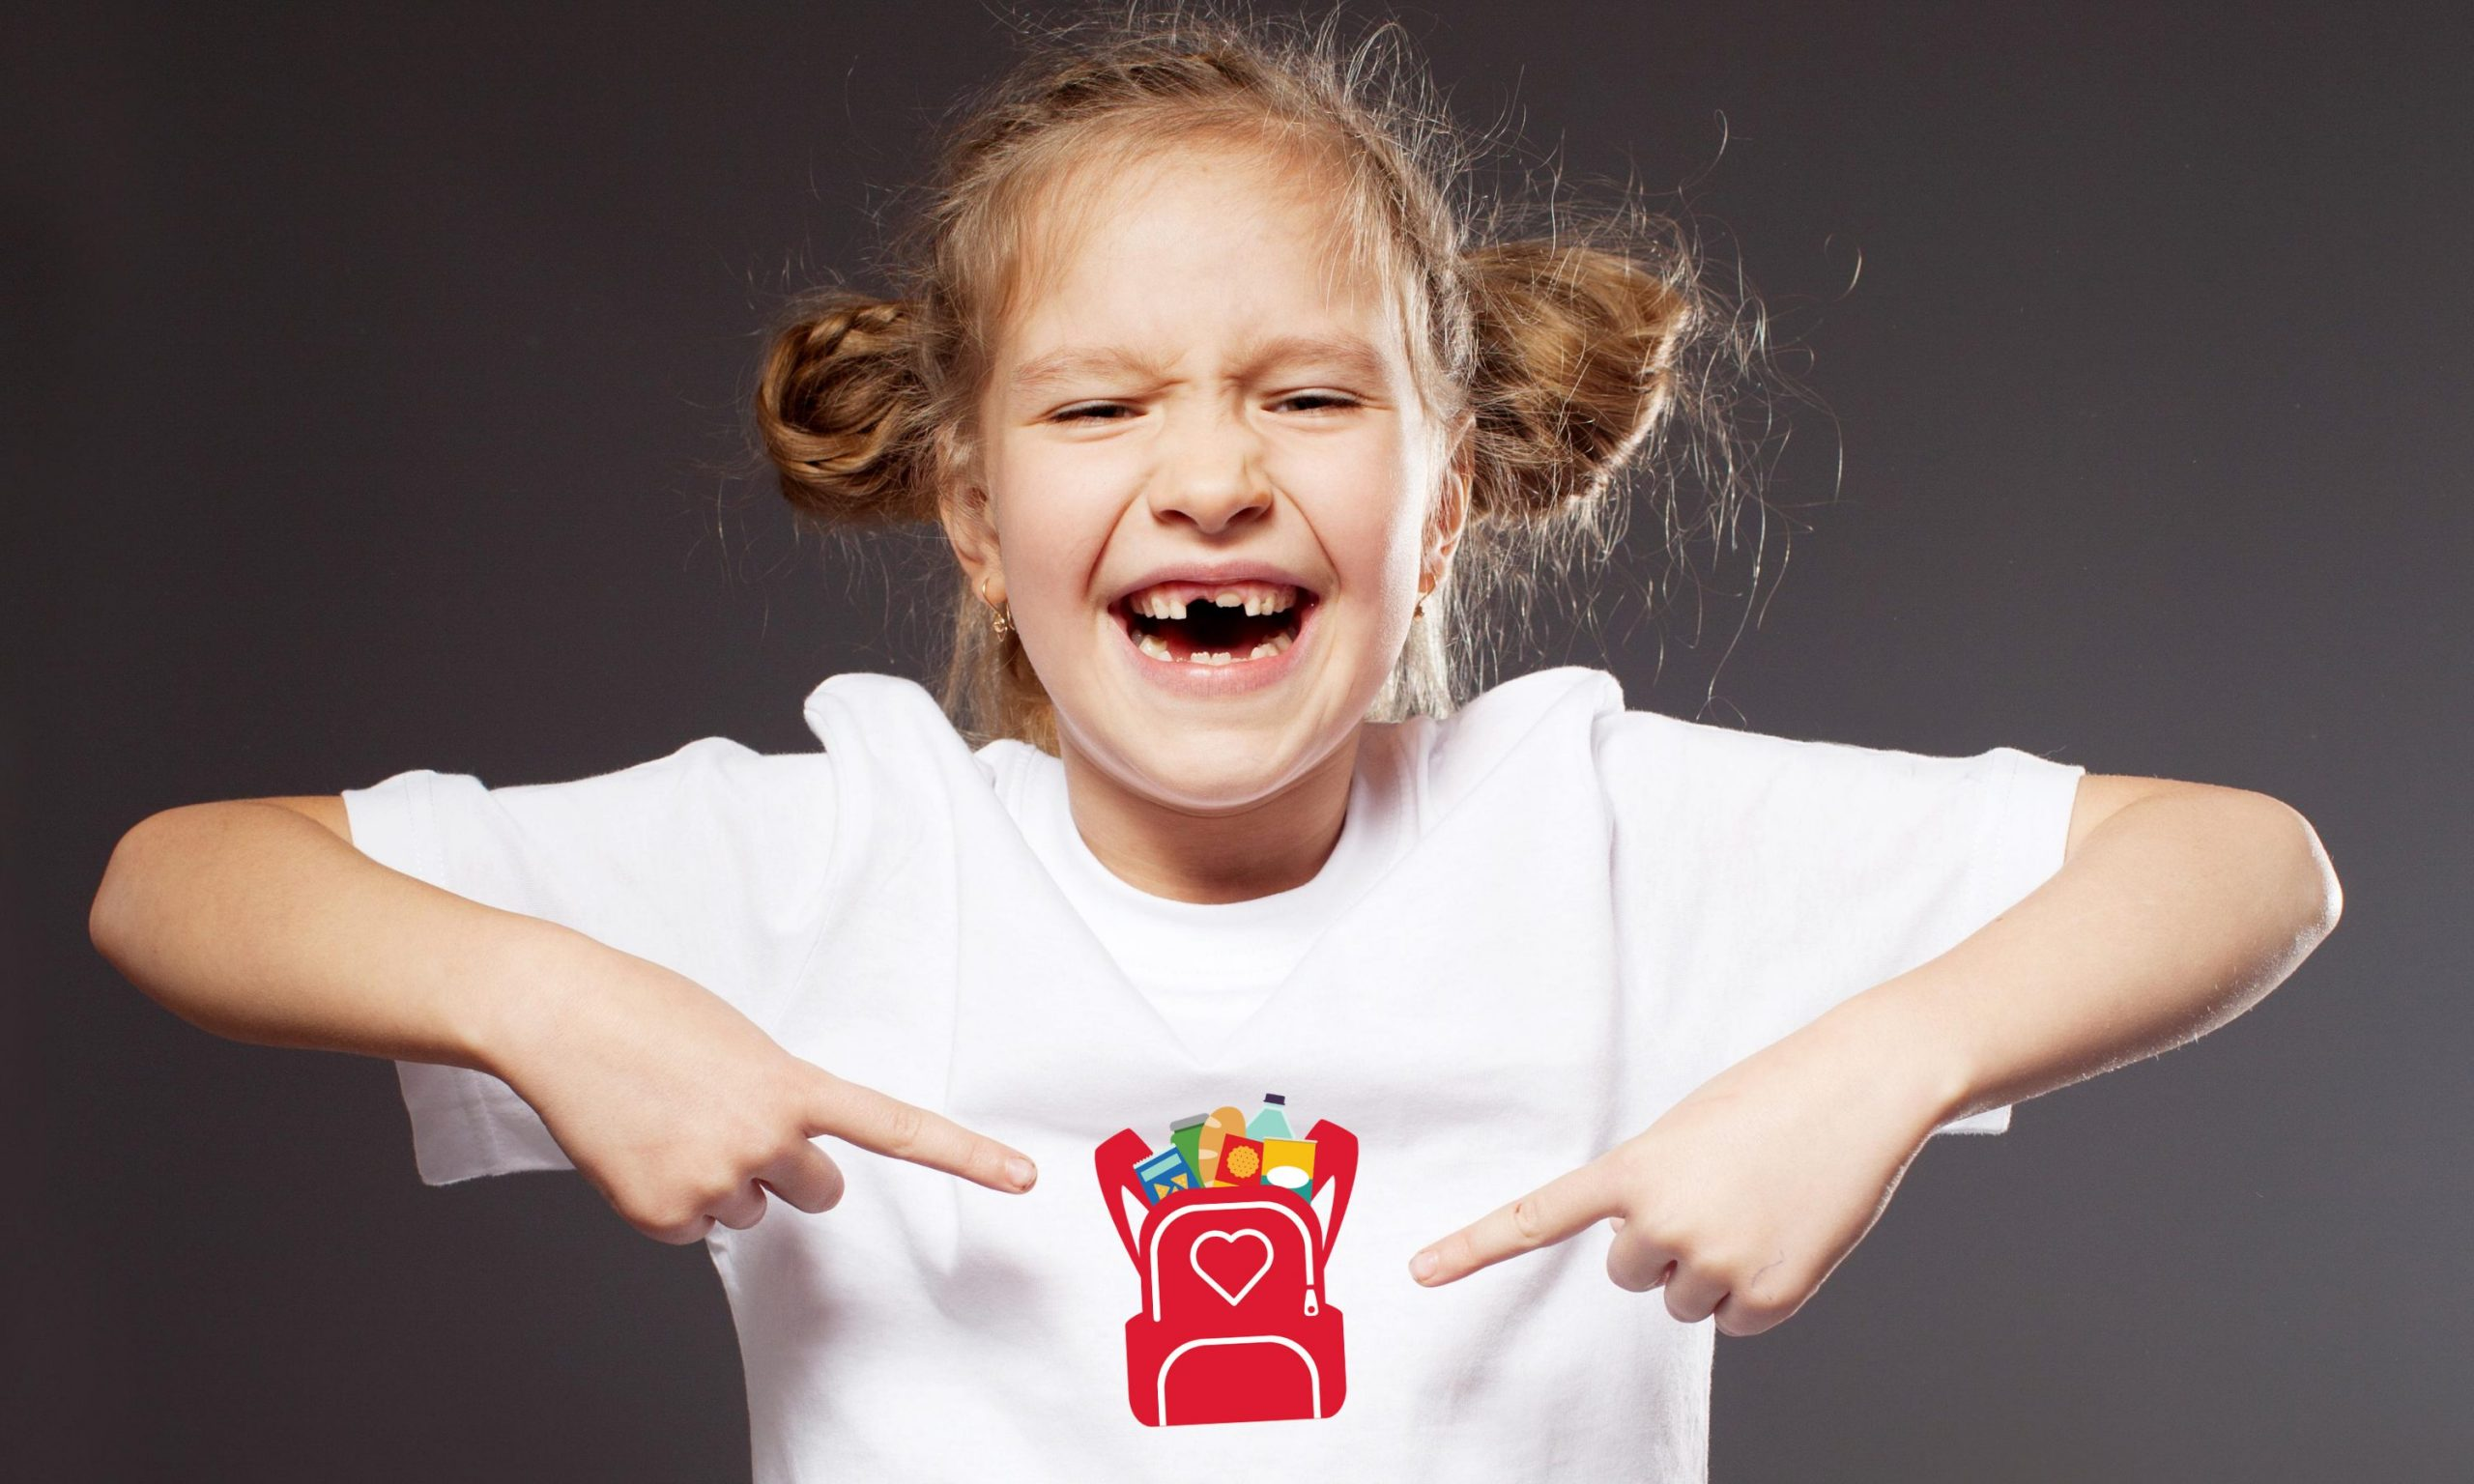 Photo of kids doing cartwheels on the lawn